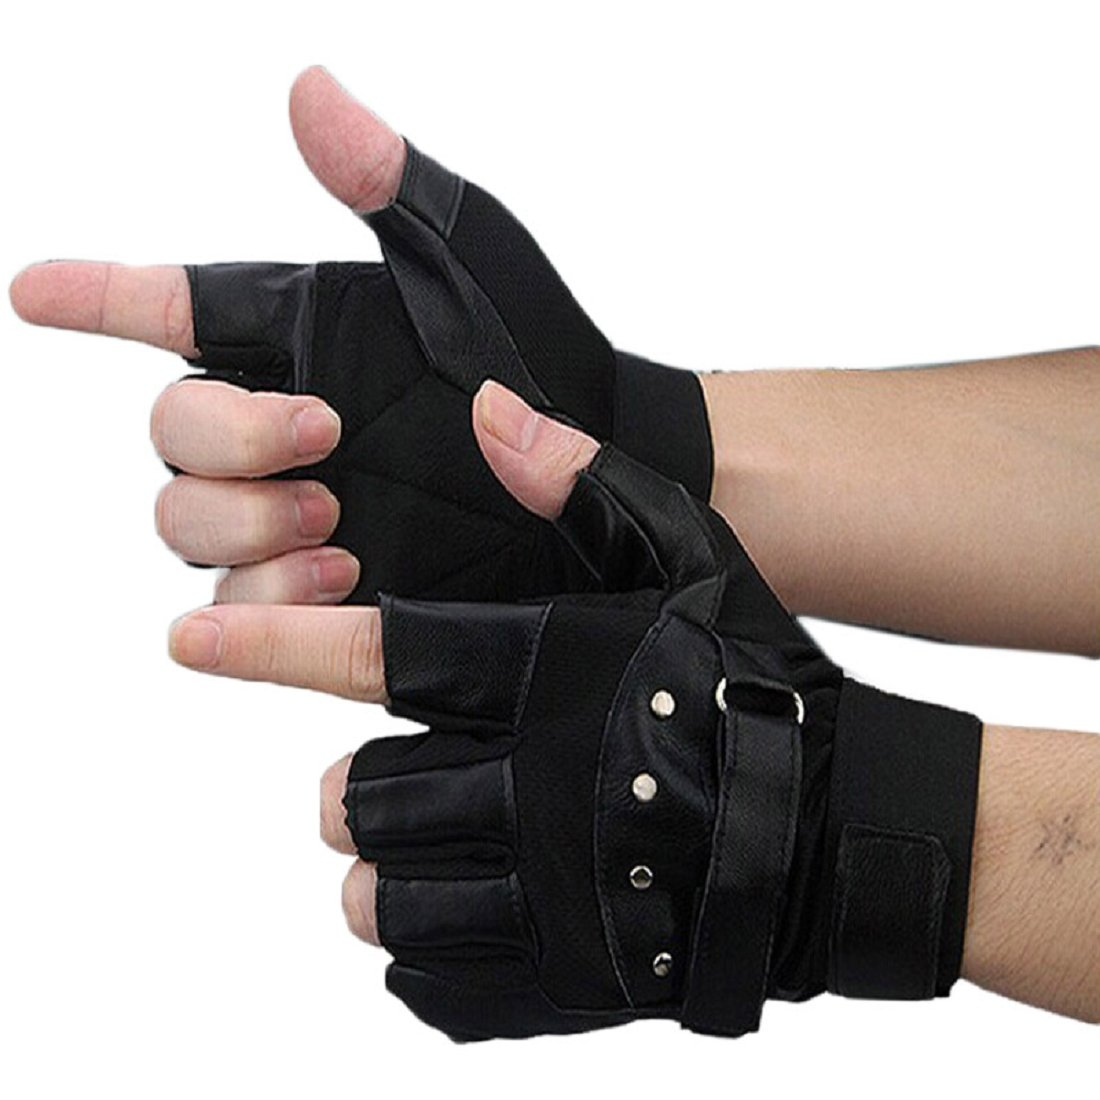 Shensee Boy Male Soft PU Leather Driving Motorcycle Biker Fingerless Warm Gloves